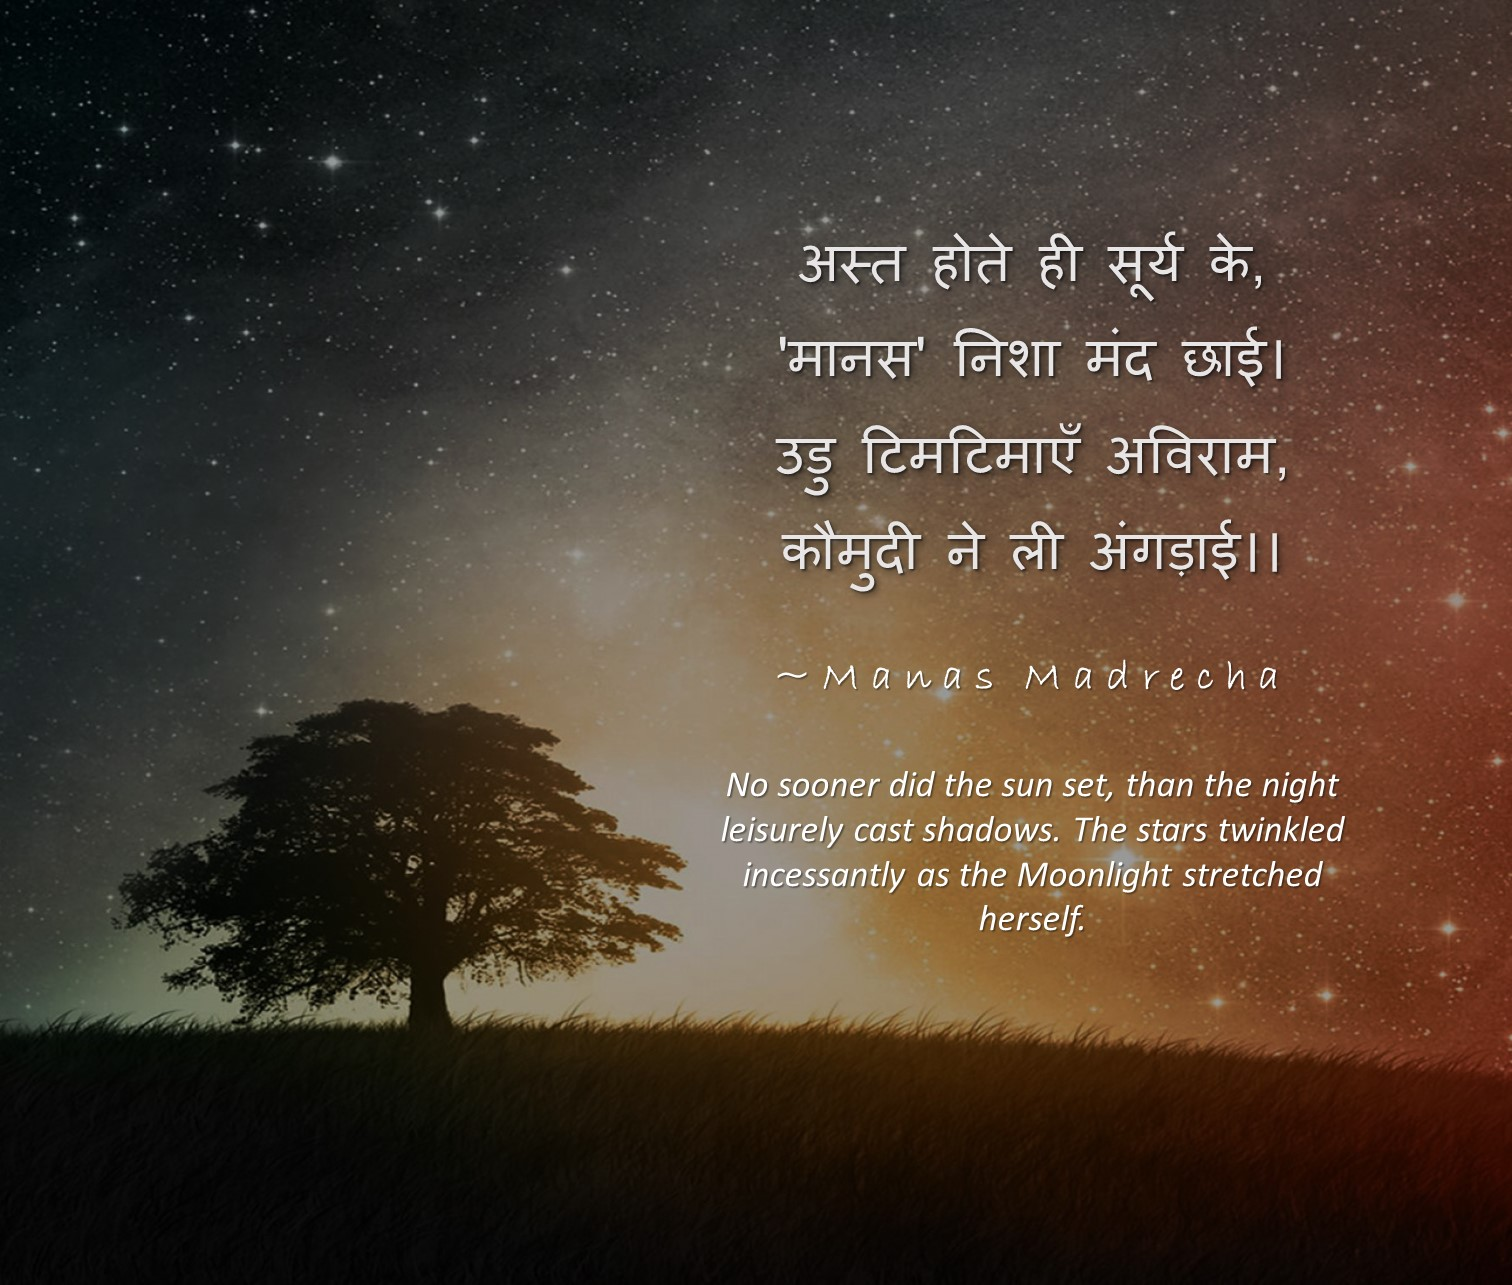 hindi poem on moon, poem on moon, moon quotes, moon sky, moon in night sky, moon and sun, moonrise sunset, star sky, Manas Madrecha, Manas Madrecha poems, Manas Madrecha quotes, Manas Madrecha stories, Manas Madrecha blog, simplifying universe, starry sky, night sky orange, tree in night sky